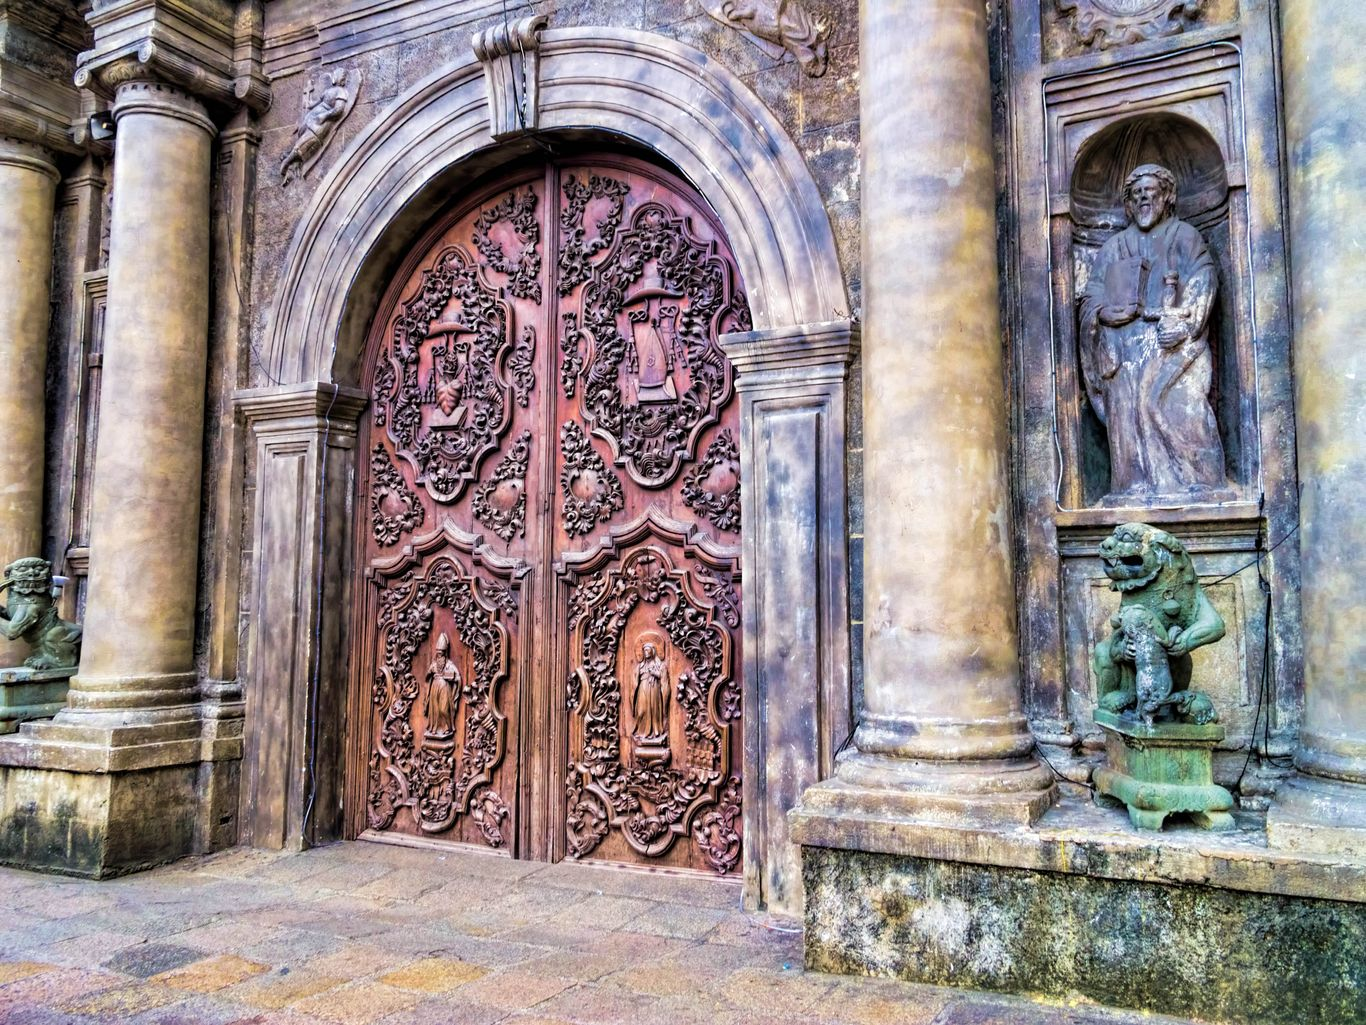 The intricately carved doors of an old stone church flanked by stone pillars, statues, and engravings